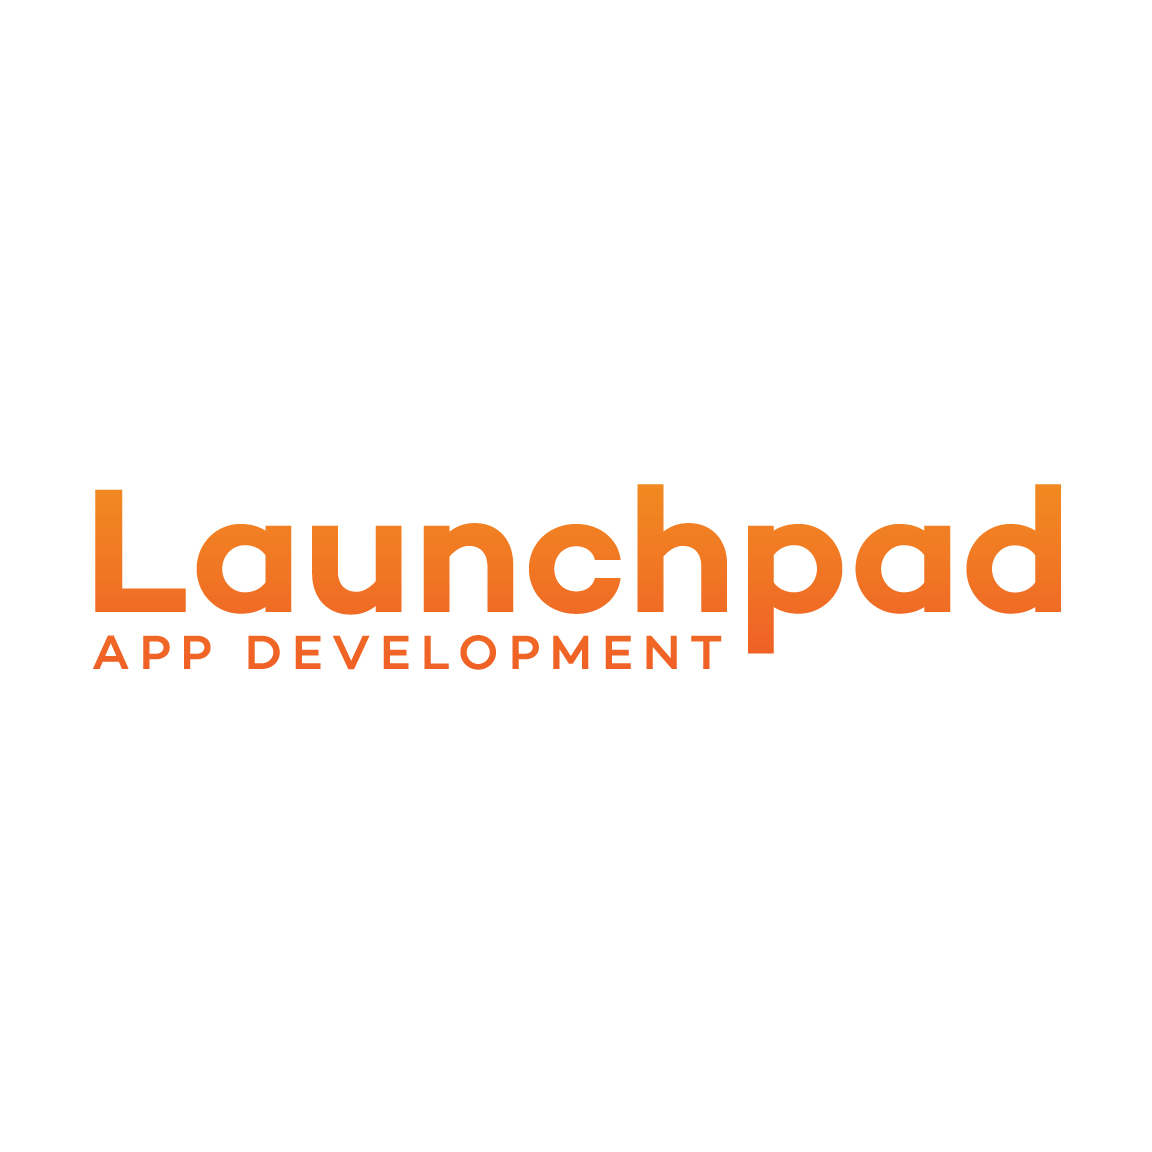 Launchpad App Development Logo